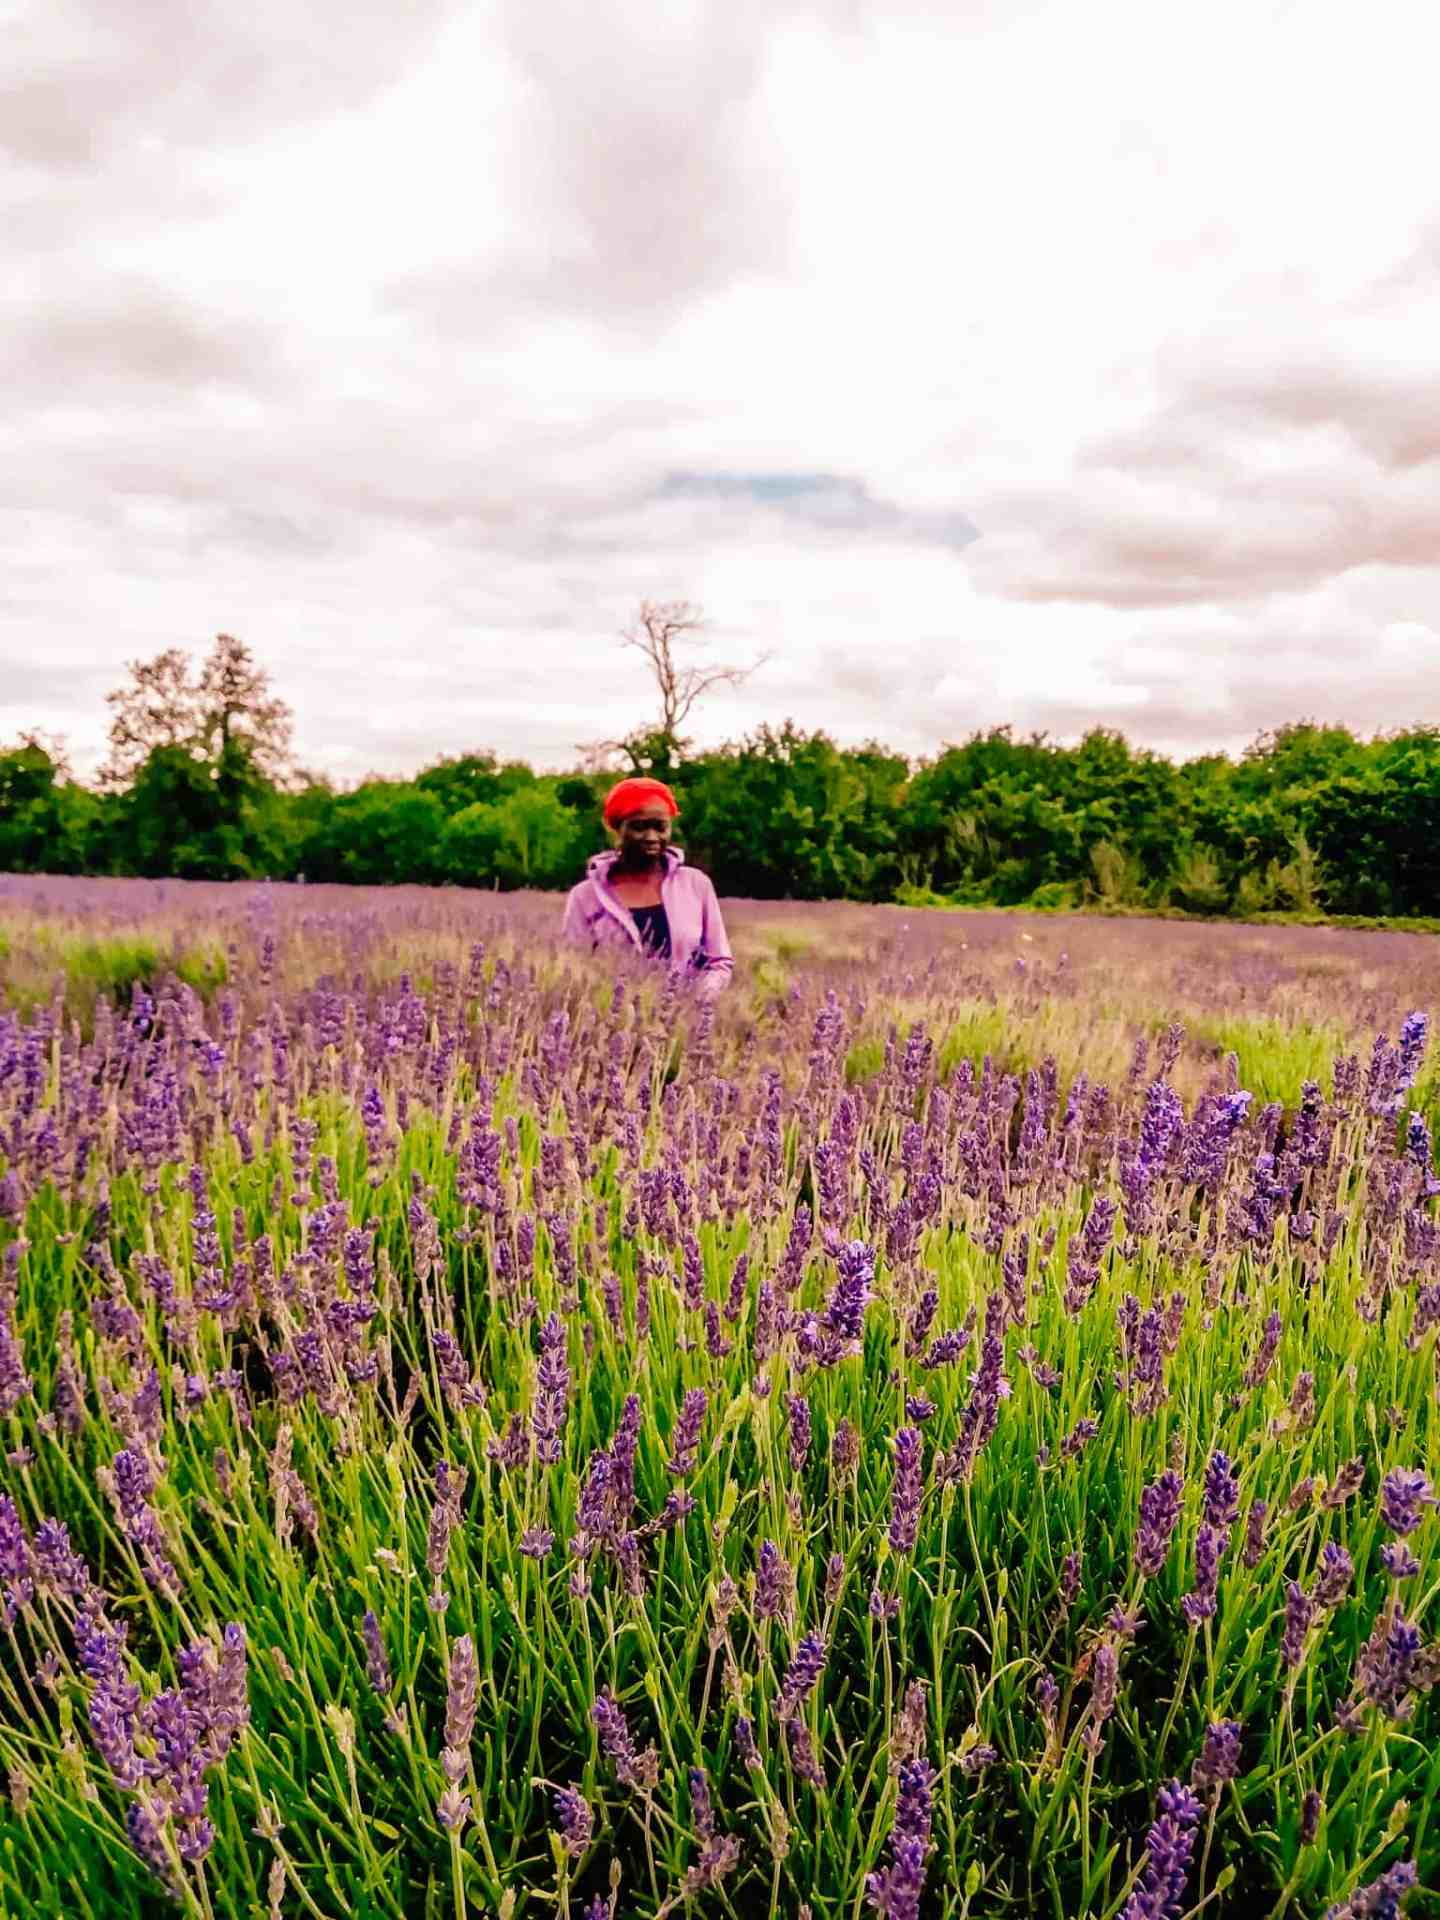 A lady with a purple jacket and red hat standing in a lavender field